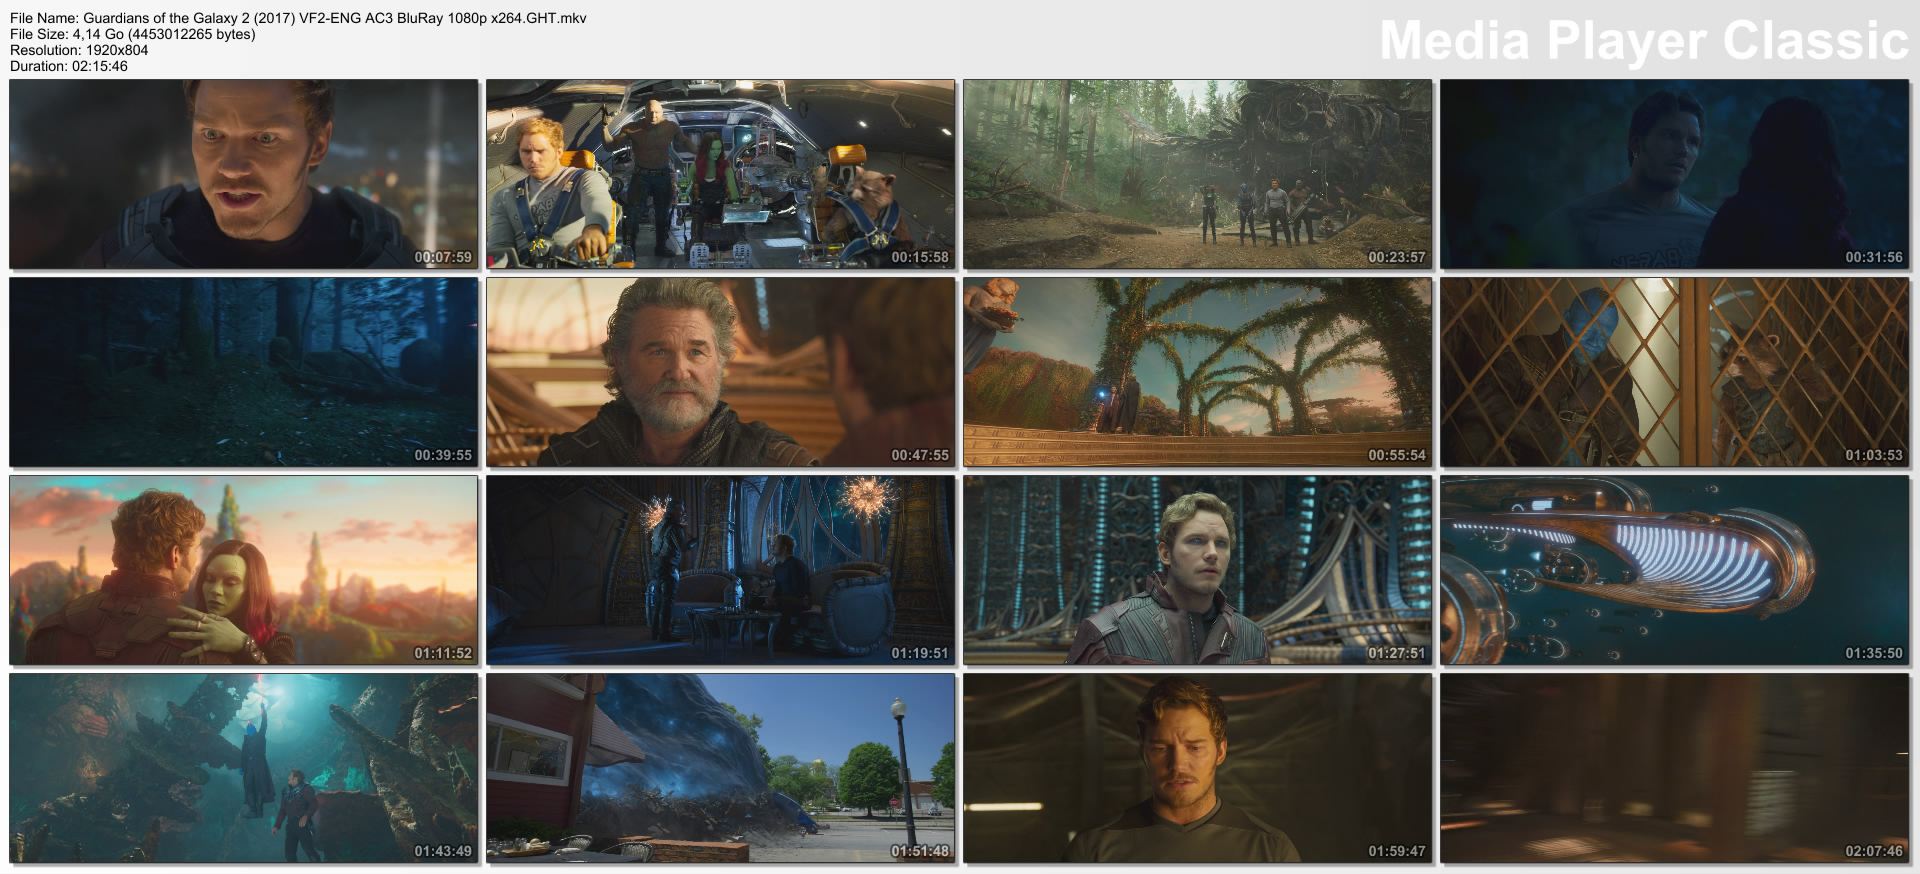 Guardians of the Galaxy 2 (2017) VF2-ENG AC3 BluRay 1080p x264.GHT